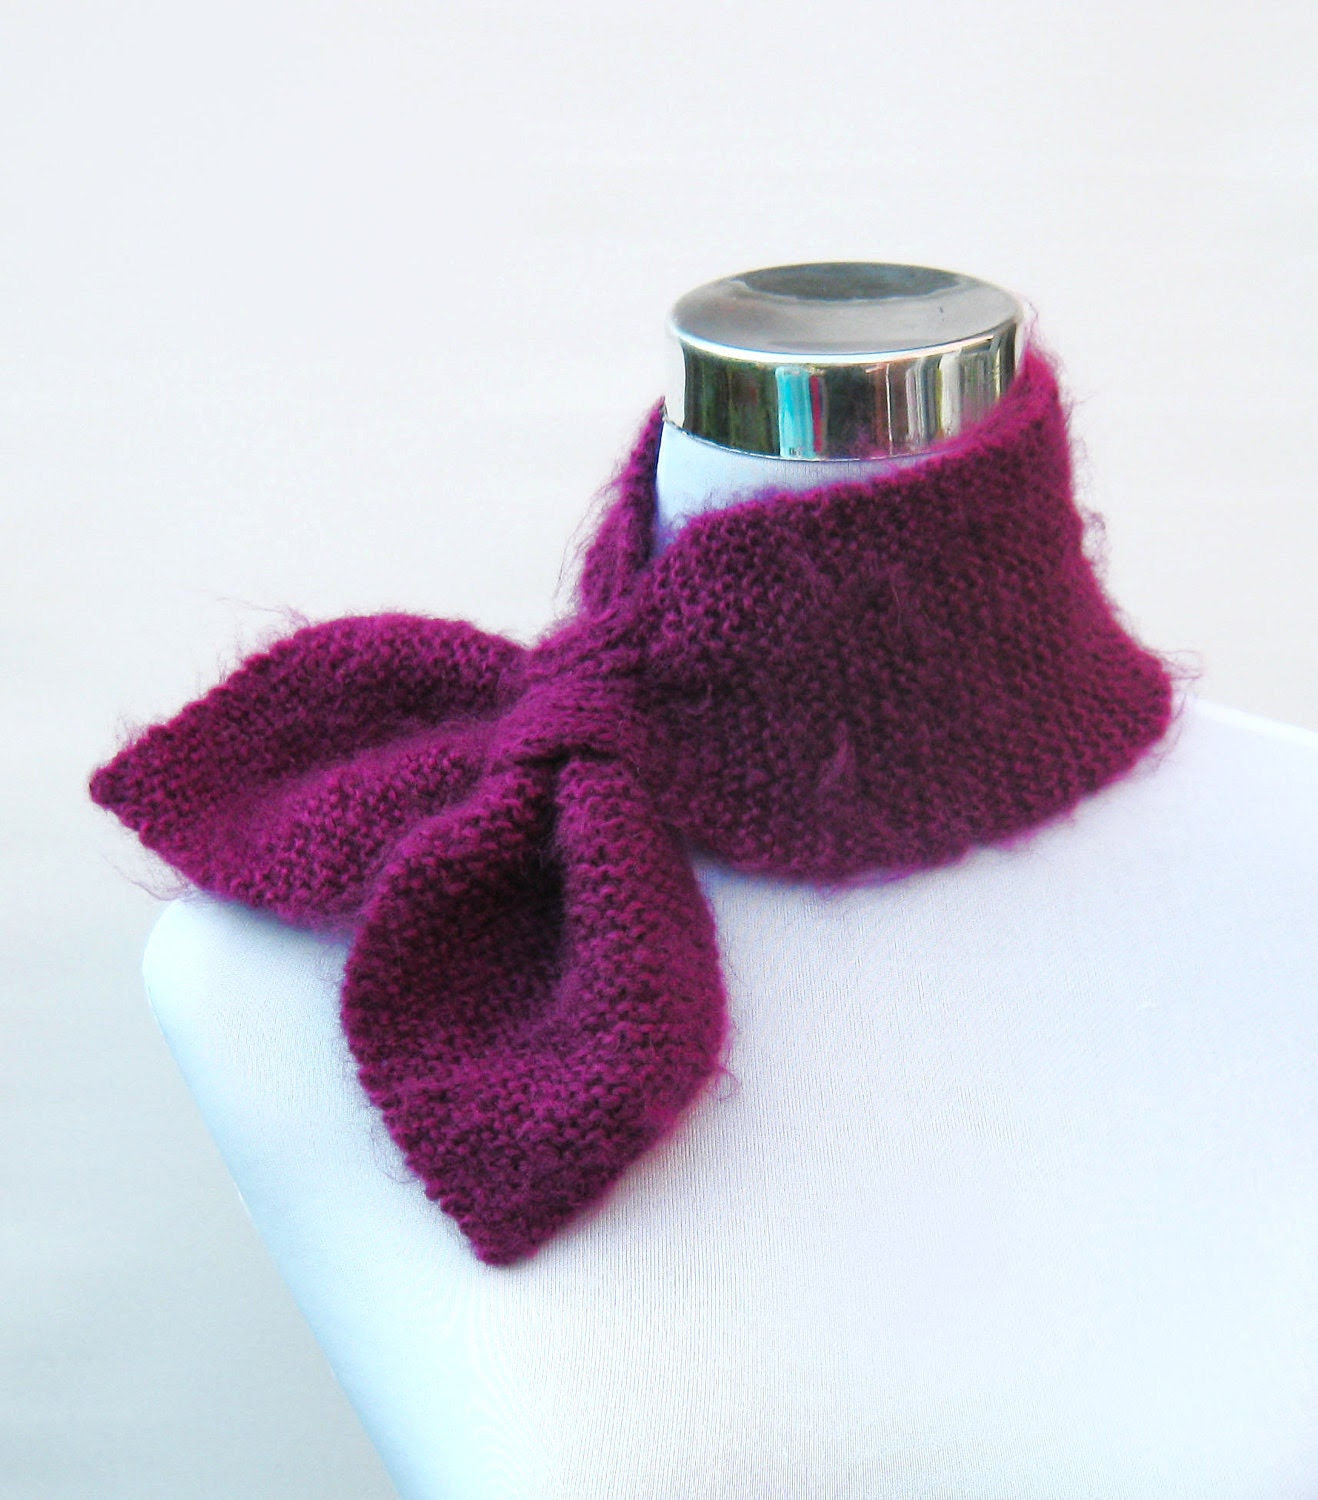 Ascot scarf knitted retro 50s style scarflette neck warmer in vibrant mohair look plum purple